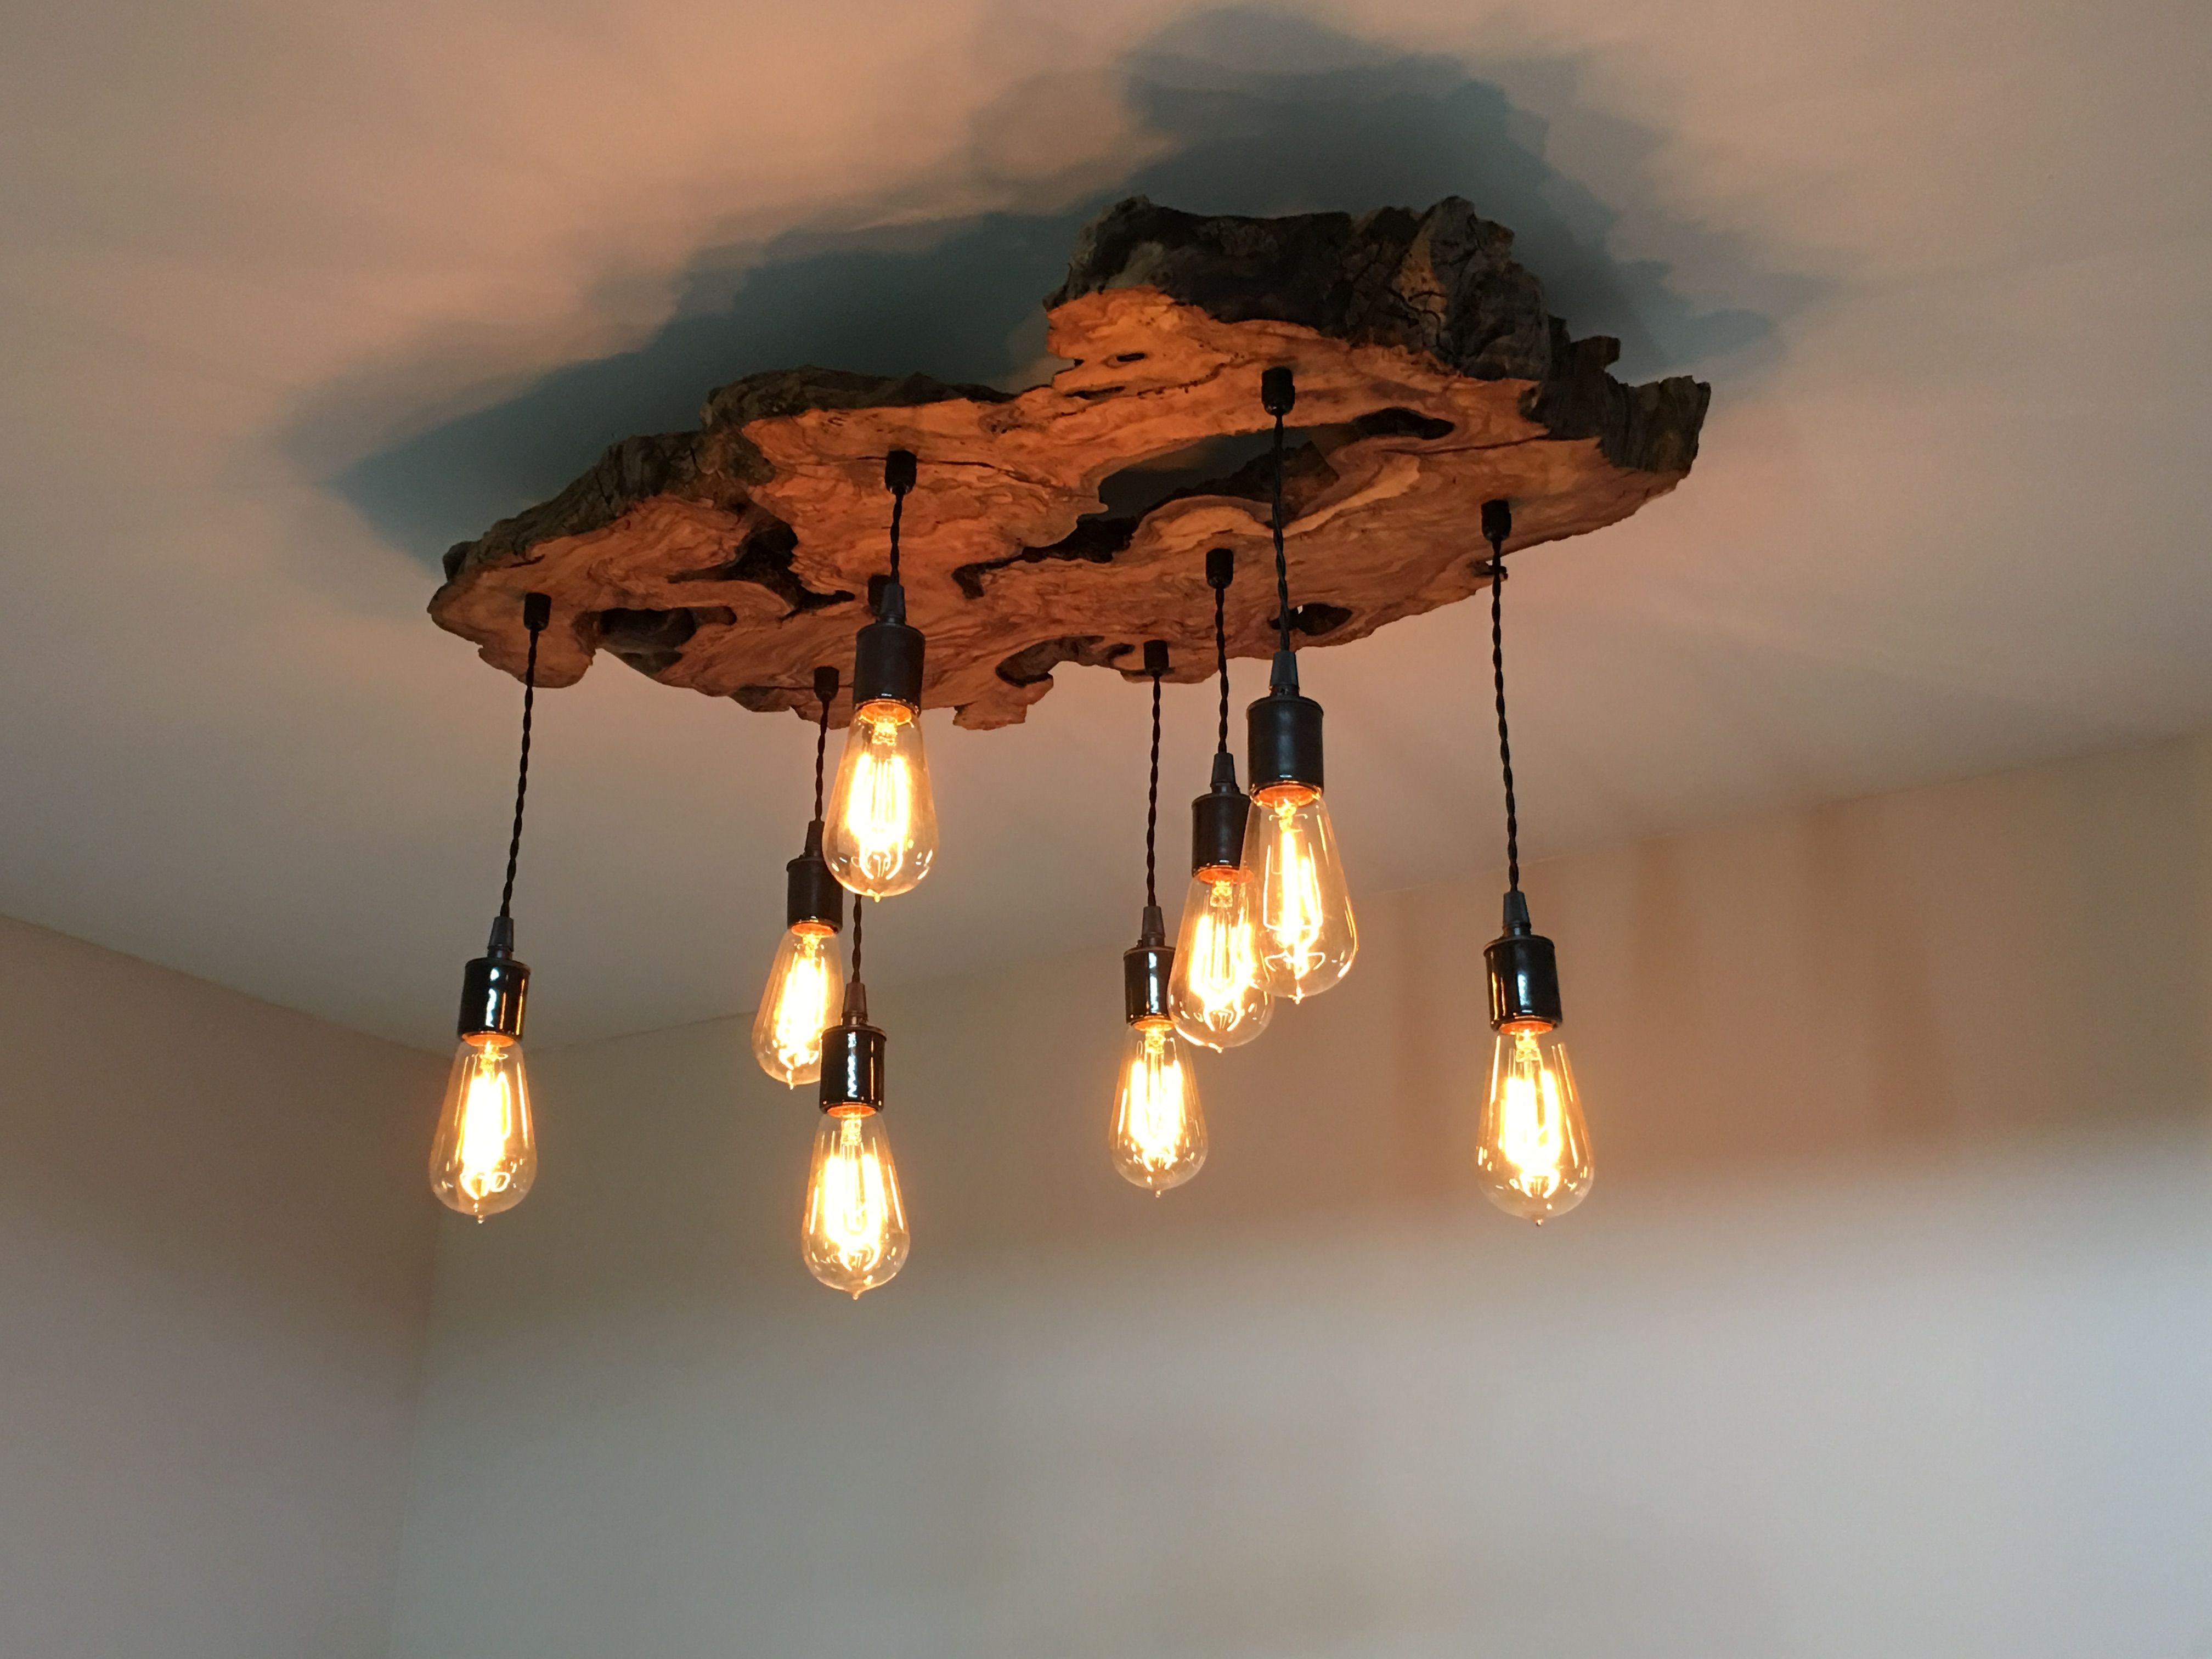 Handmade live edge olive wood chandelier rustic and industrial light fixture by 7m woodworking - Light fixture chandelier ...